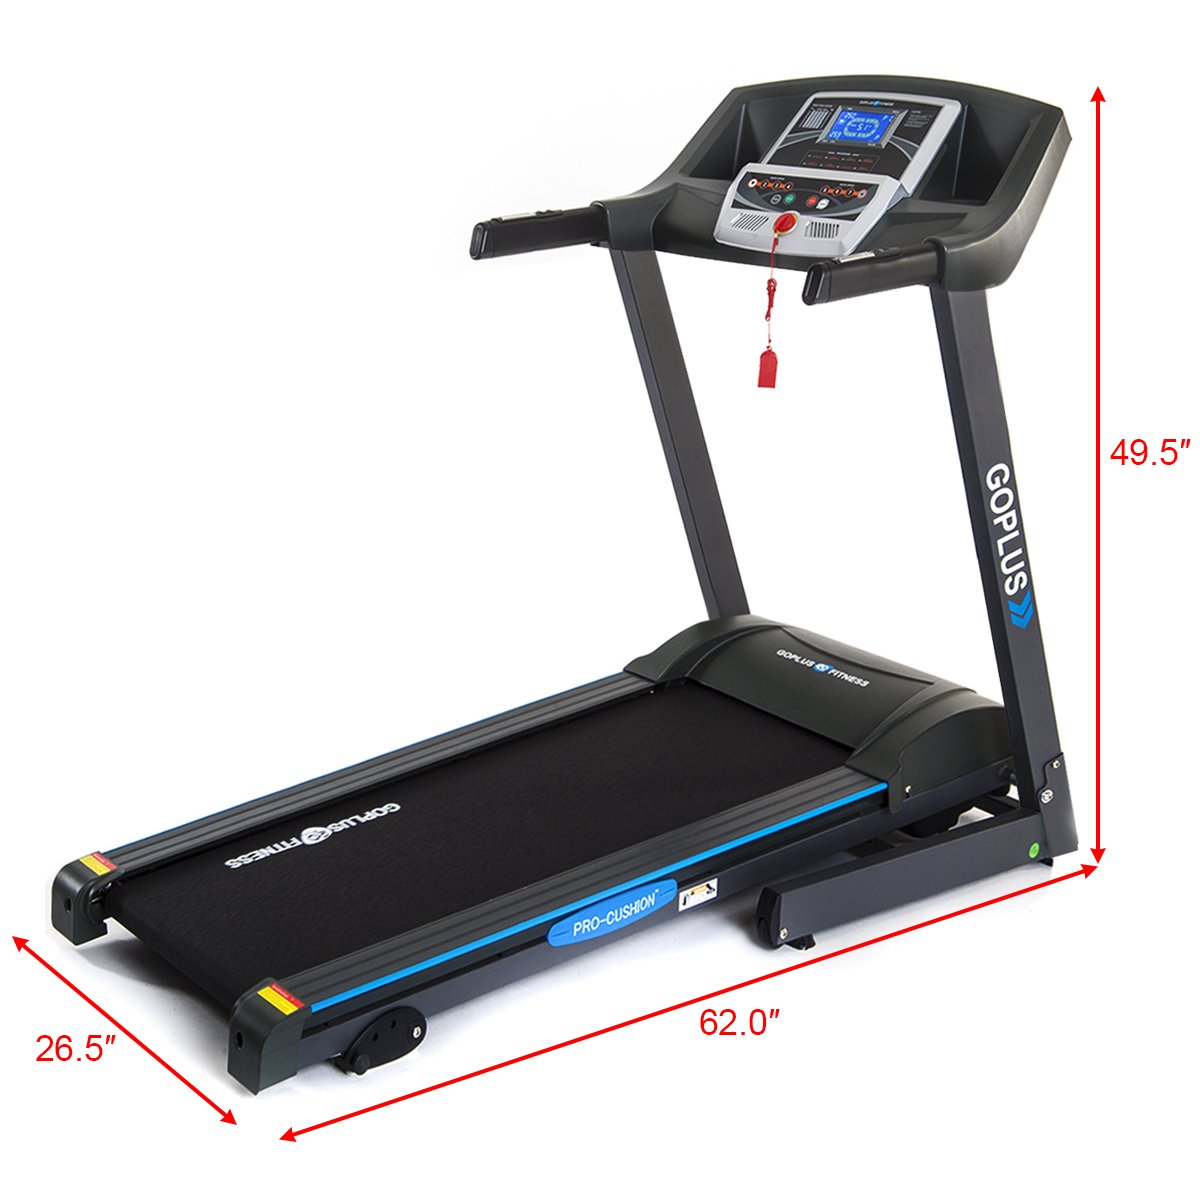 Goplus 2.25HP Folding Treadmill Electric Support Motorized Power Running Fitness Jogging Incline Machine g Fitness Jogging Incline Machine Fitness Jogging Incline Machine Black Jaguar Ⅱ(Classic) by Goplus (Image #4)